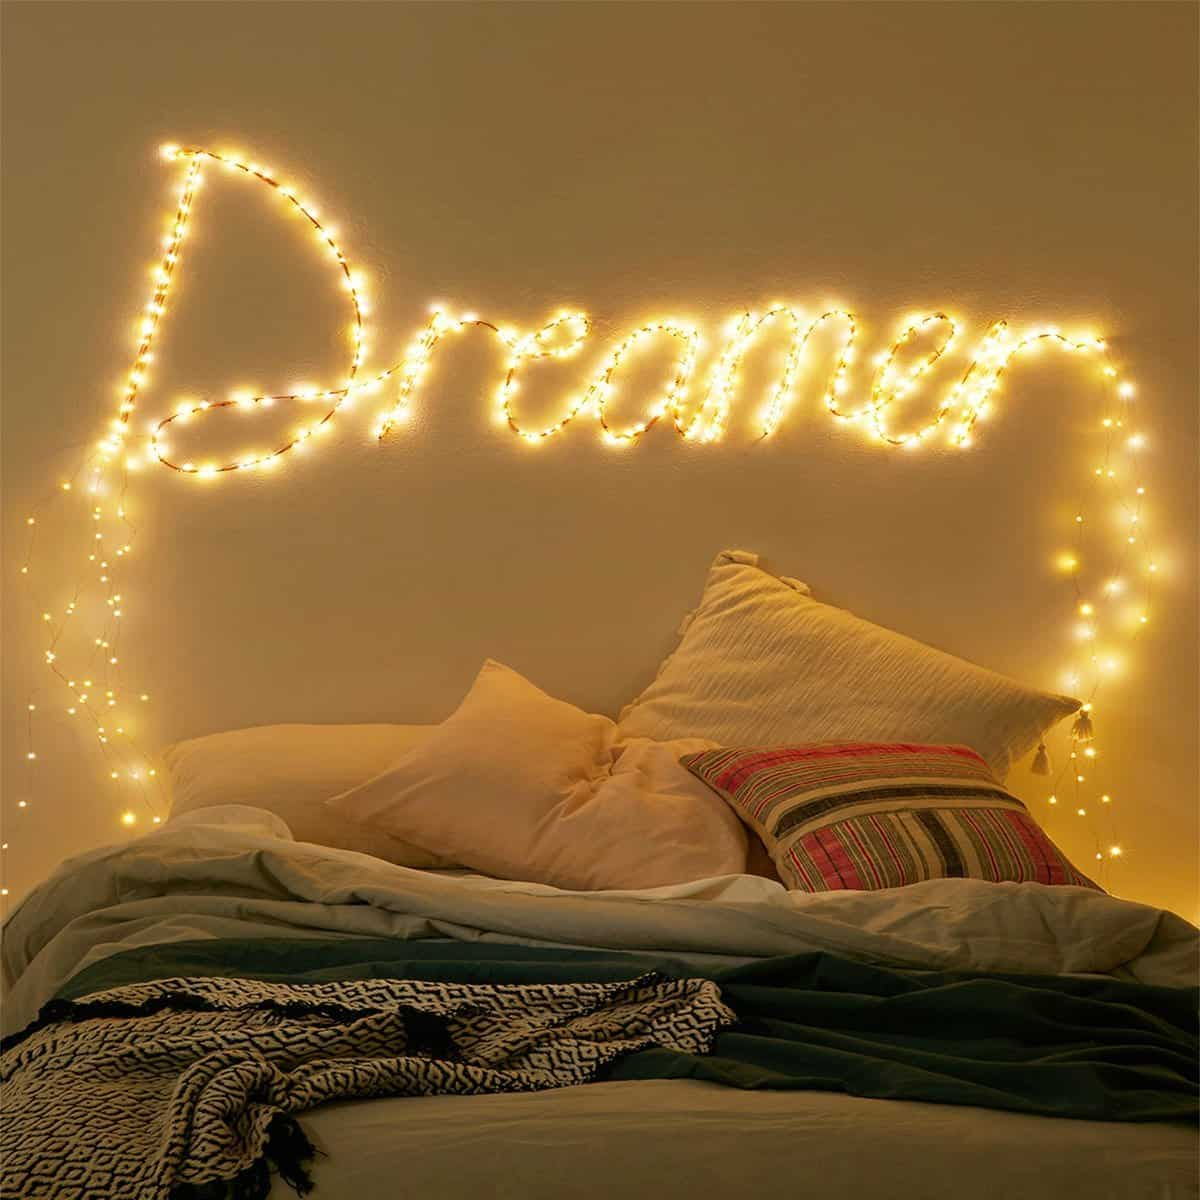 The word 'Dreamer' is spelled out in fairy lights over a cosy bed in a dimly, yellow-lit room.